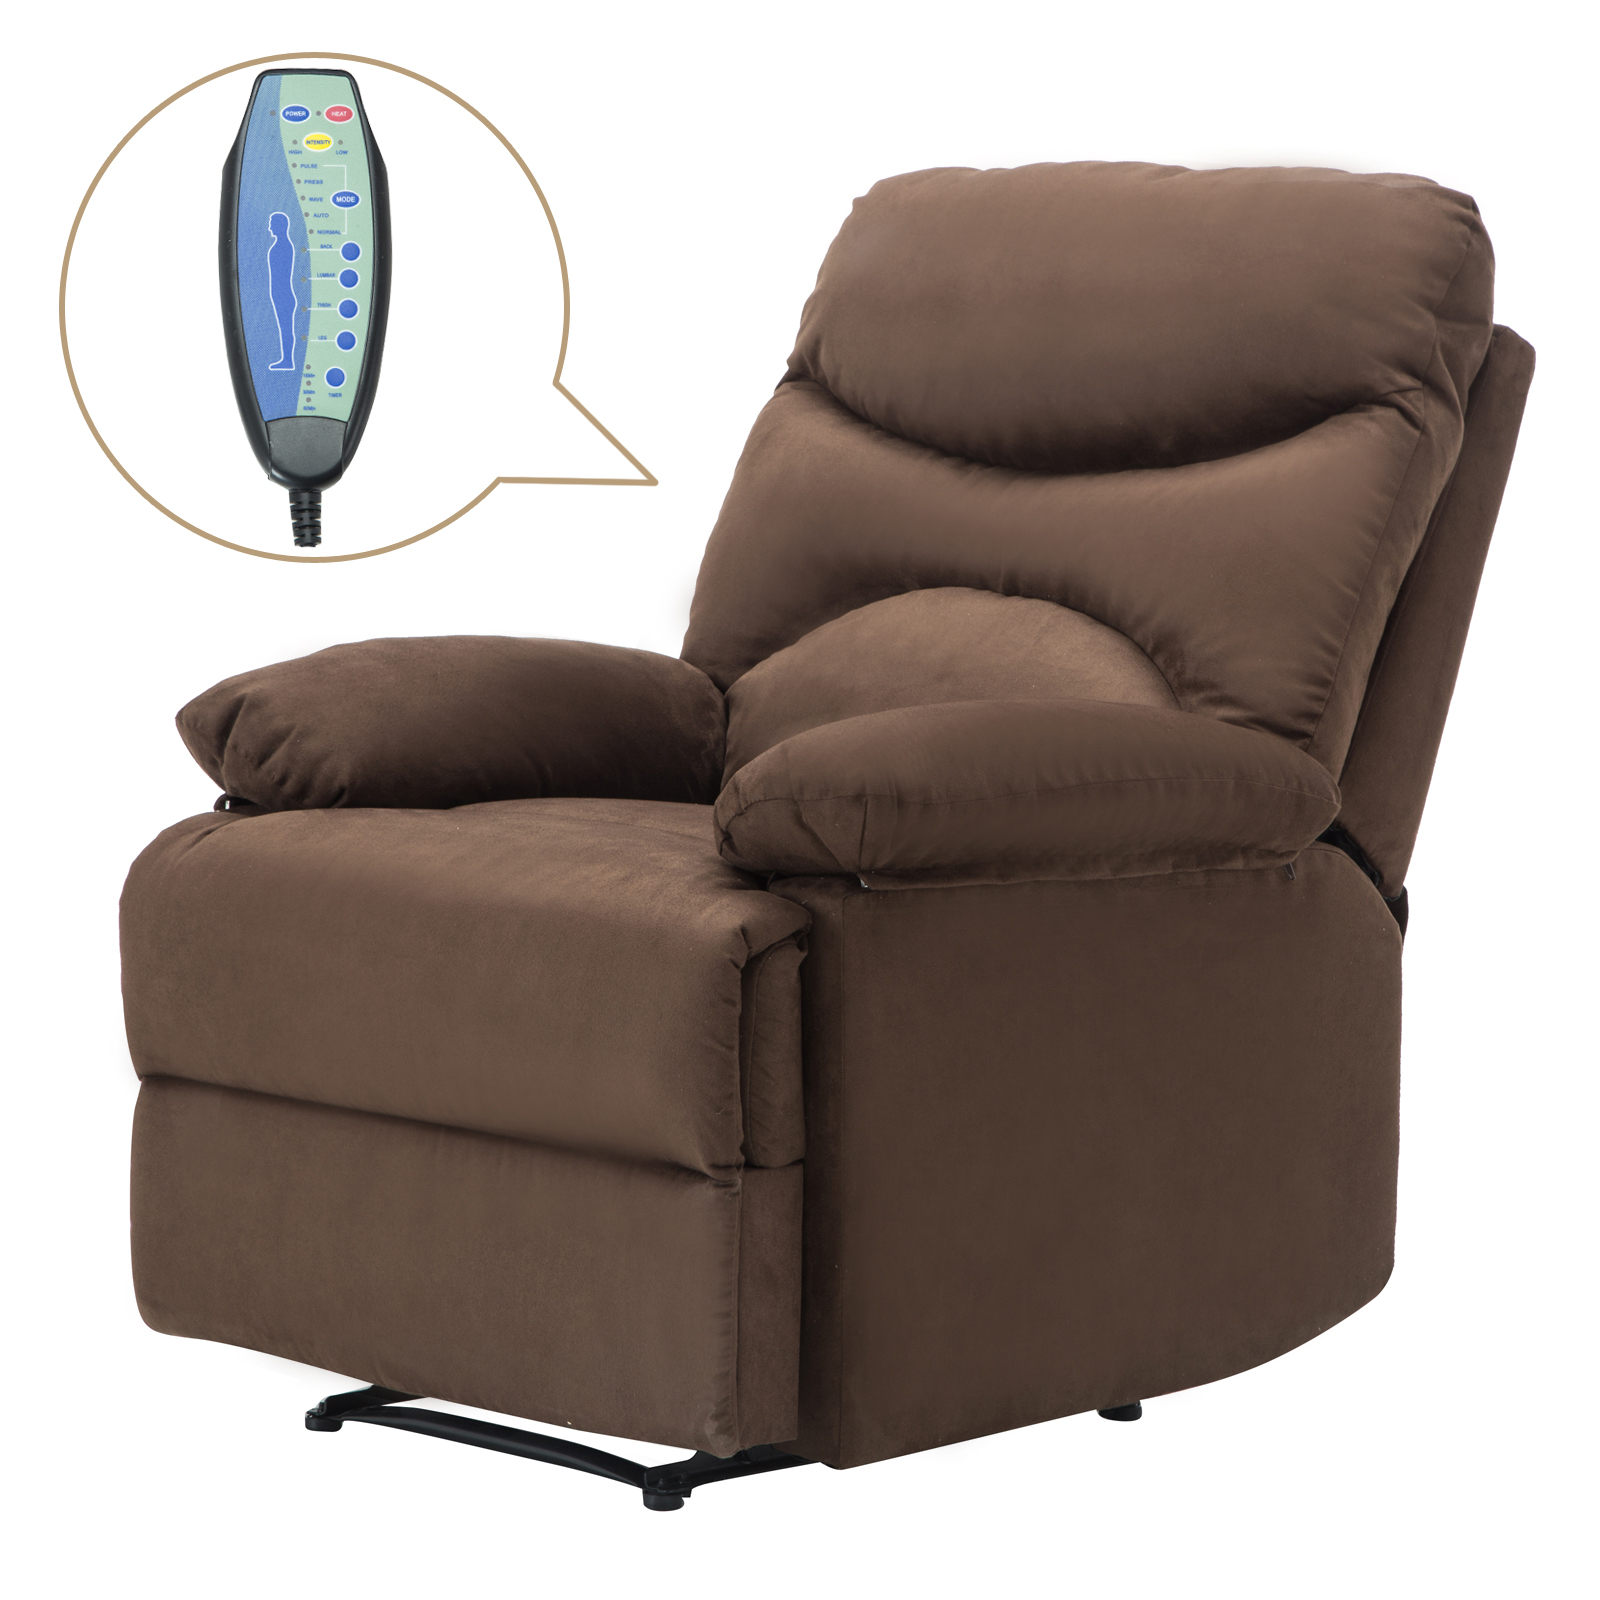 Ergonomic Lounge Heated Microfiber Massage Recliner Sofa Chair W Control EBay